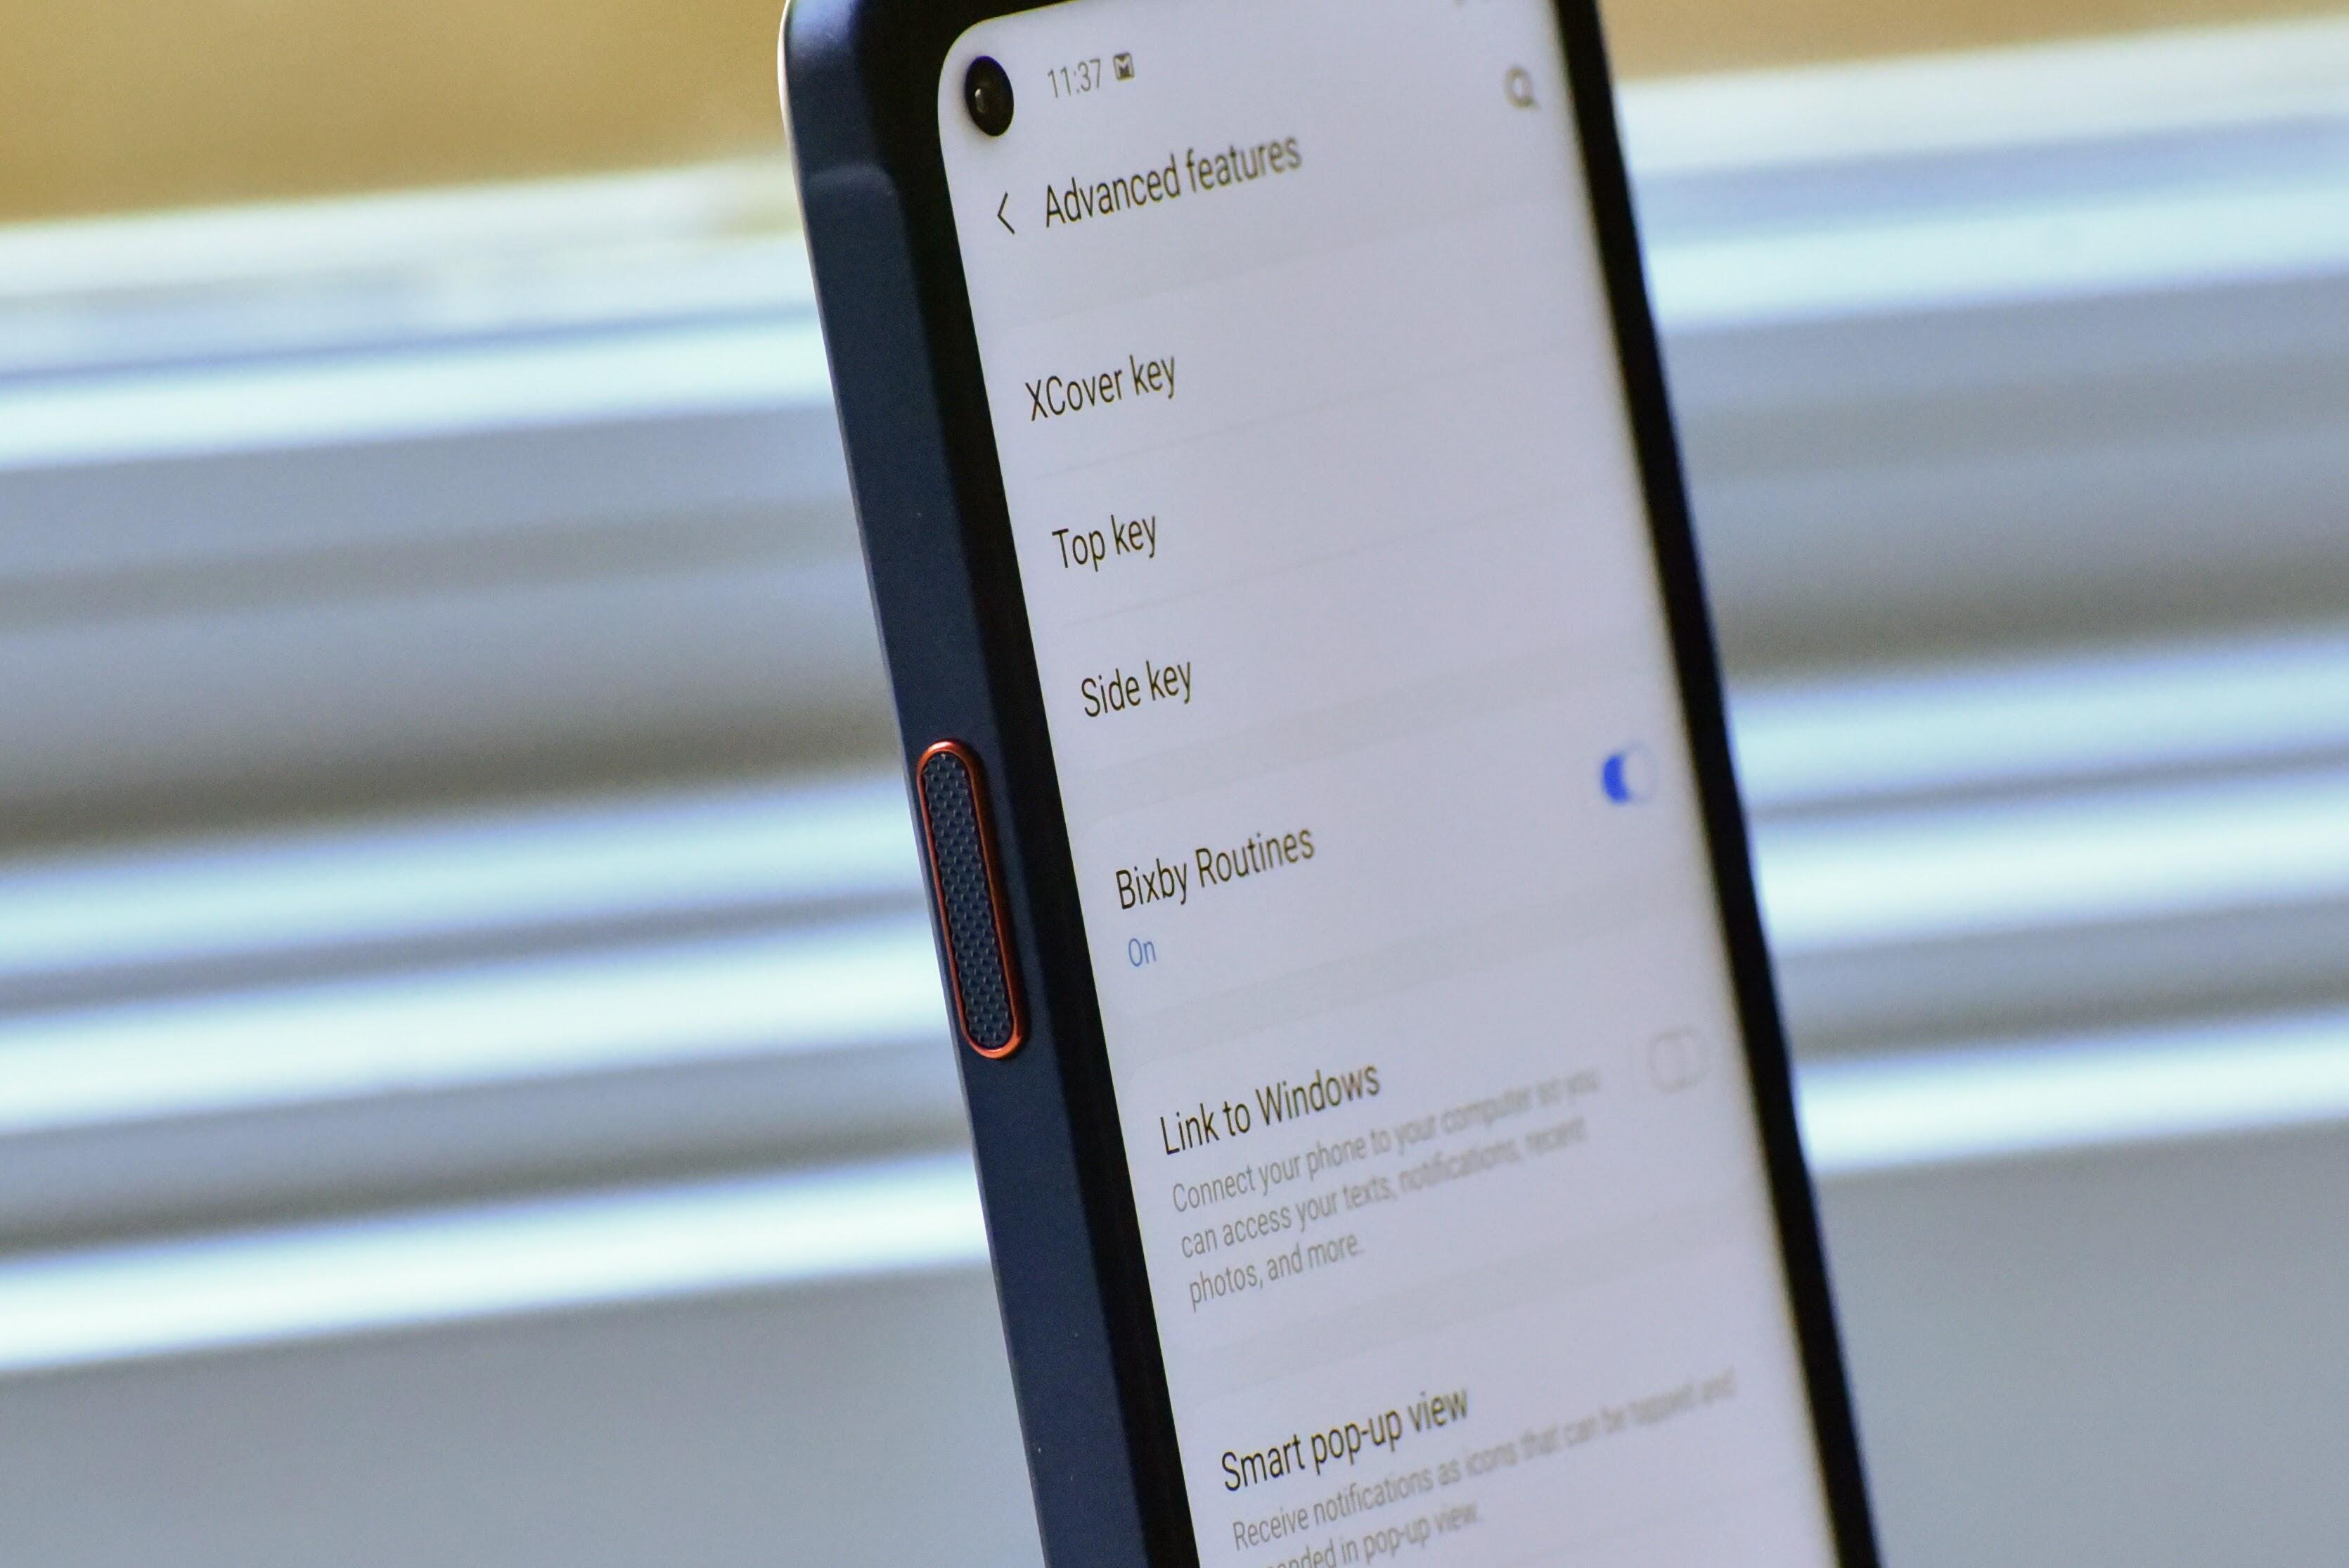 Push to Talk button on Samsung XCover Pro